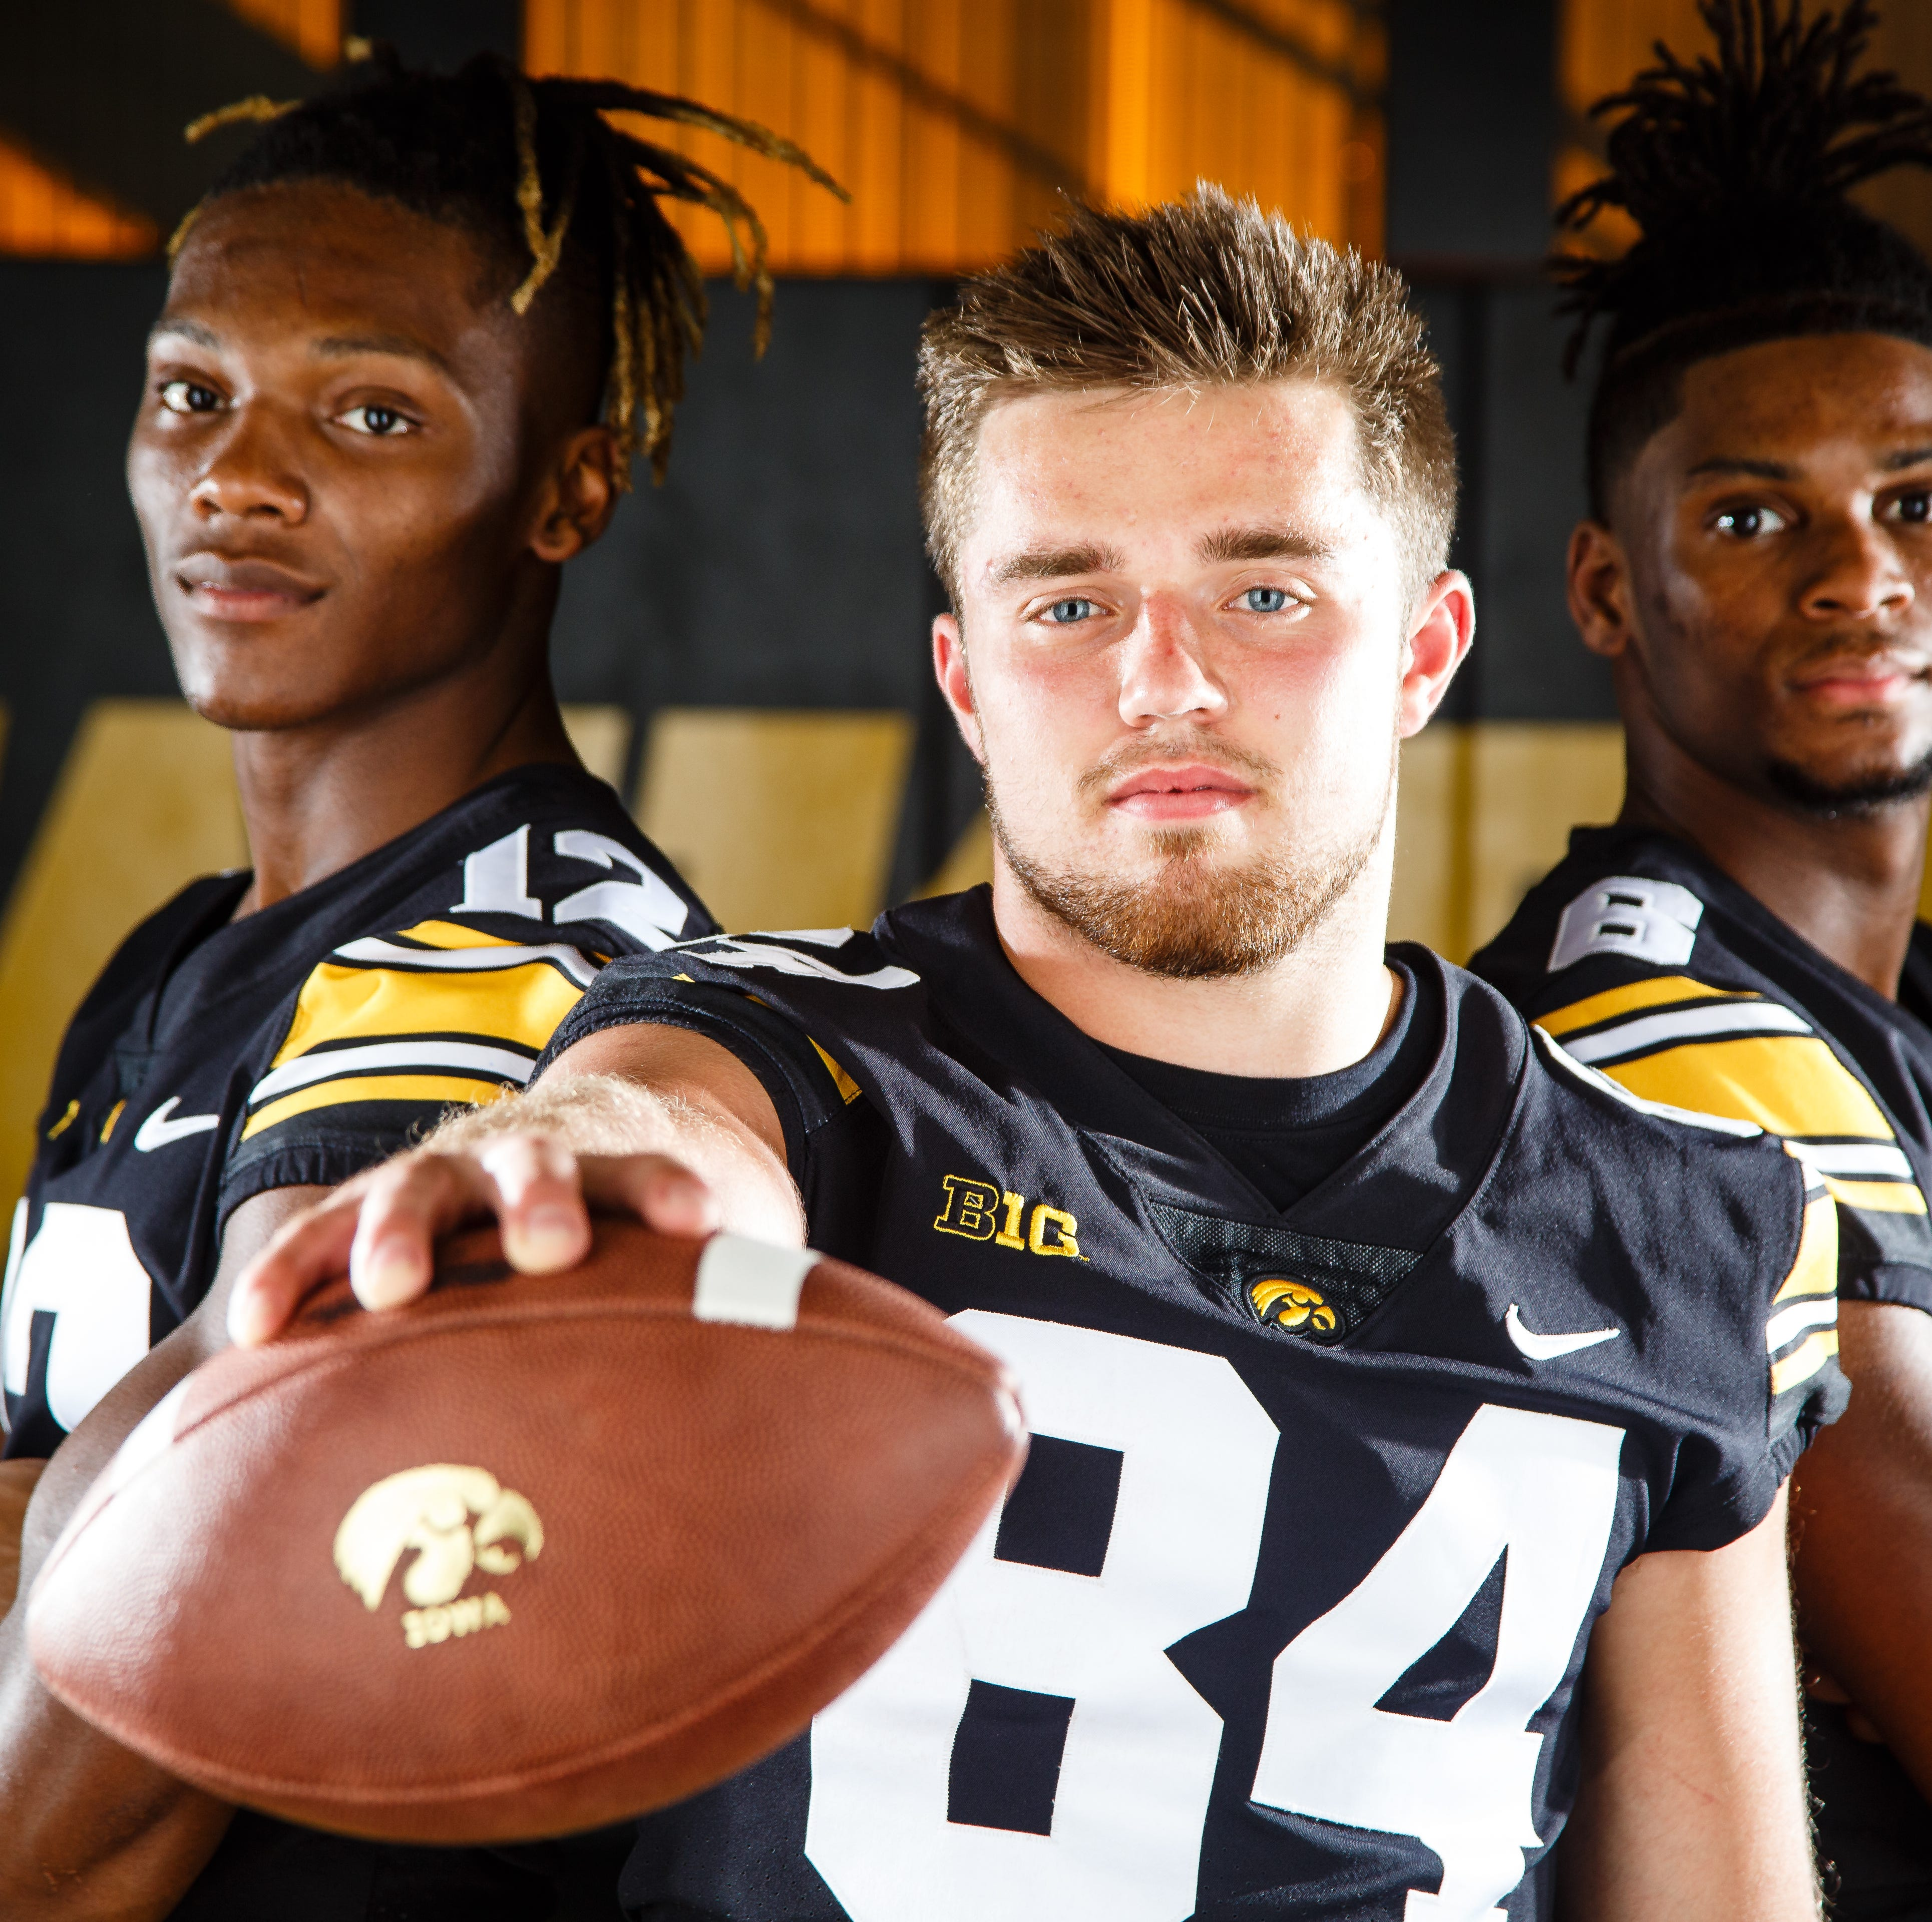 Sizing up Iowa's wide receiver options: Will anyone help out the core four?